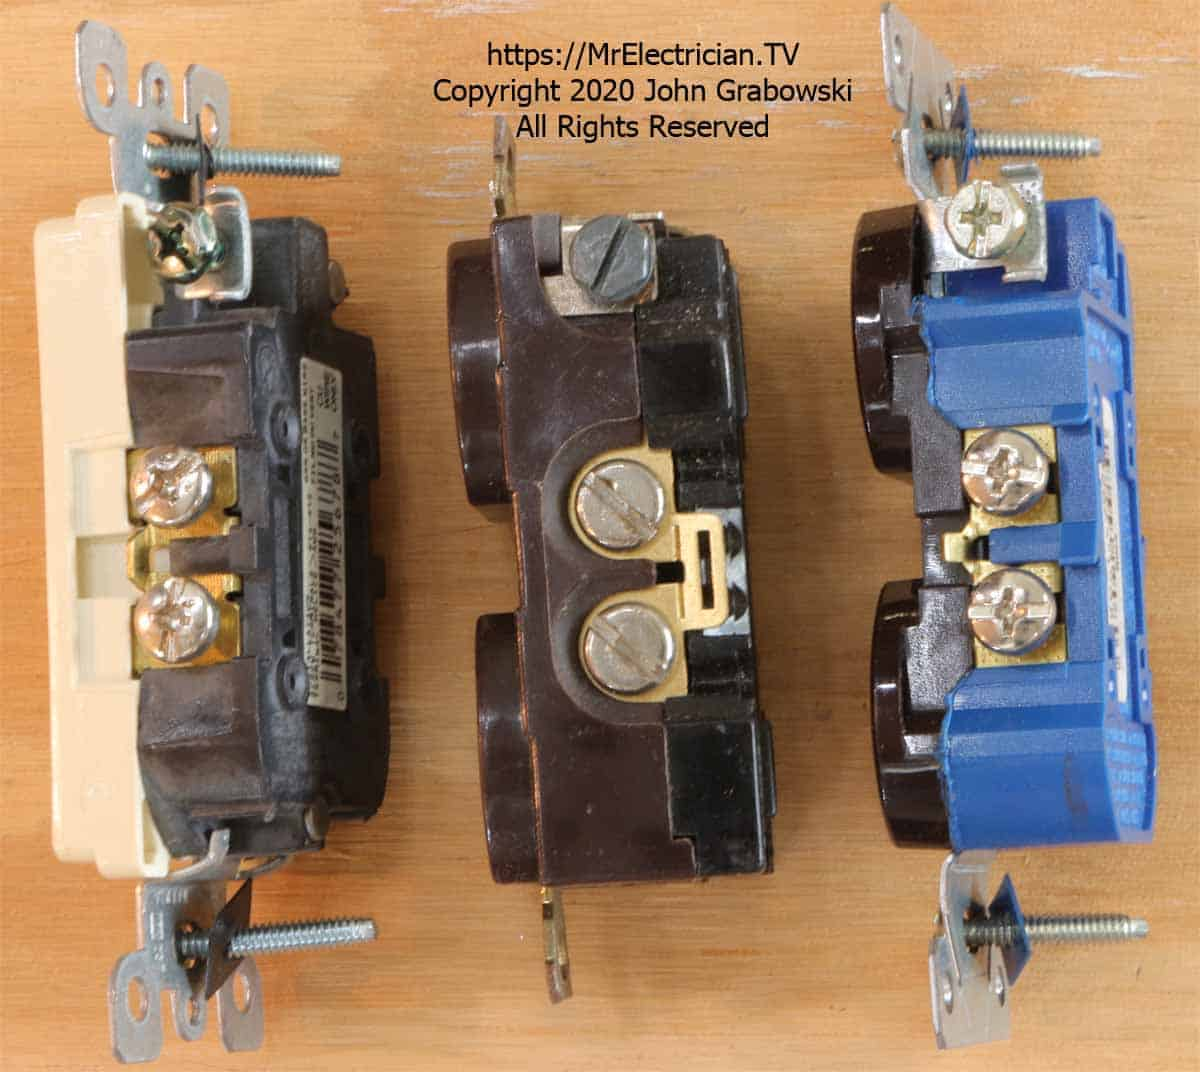 Three duplex electrical receptacle outlets on their side showing the break-off tabs for creating a split receptacle